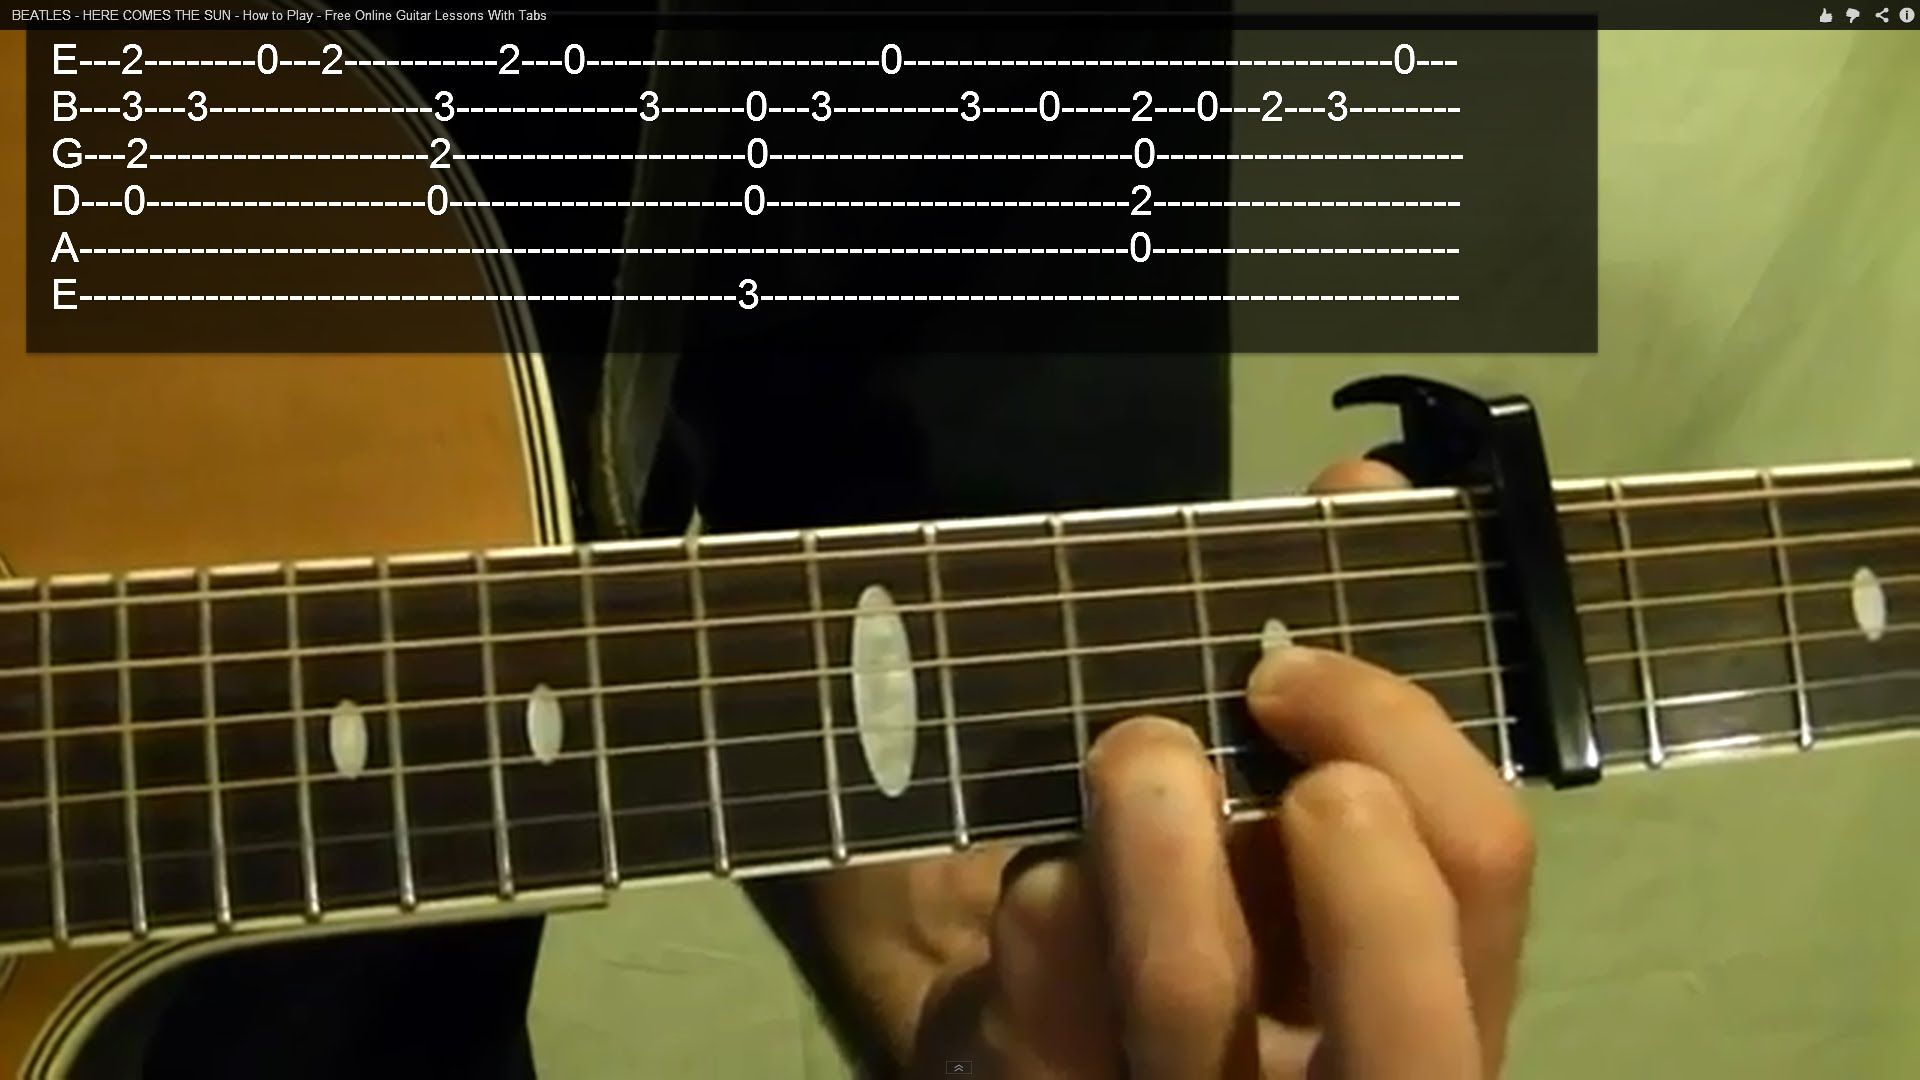 Beatles Here Comes The Sun Guitar Lesson How To Play On